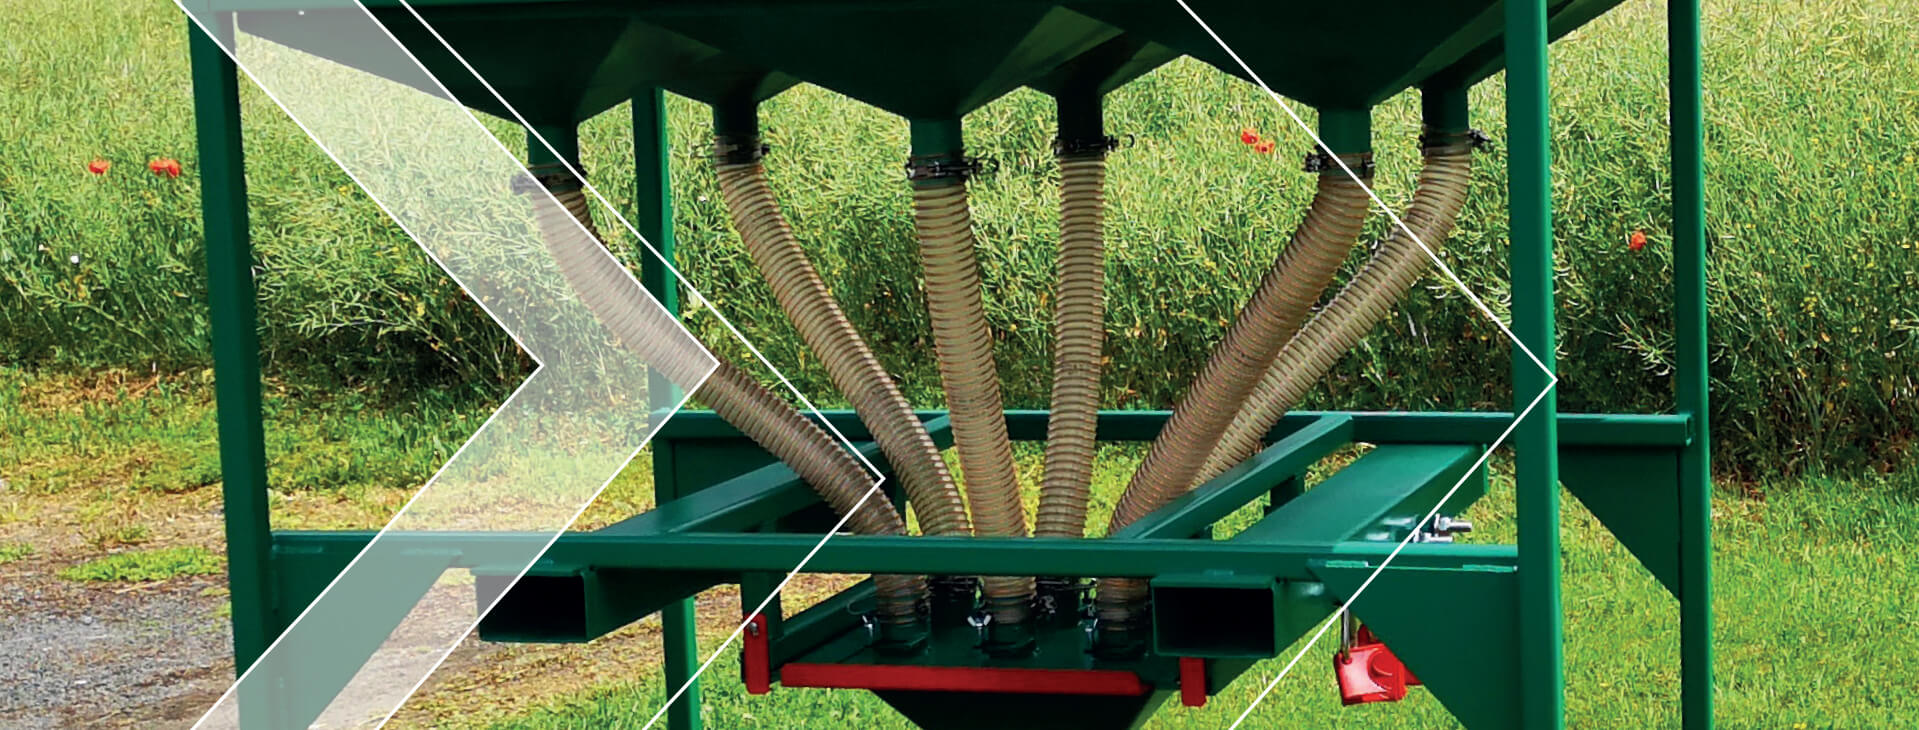 Machine Agricole 2, Prodirect-Agriculture